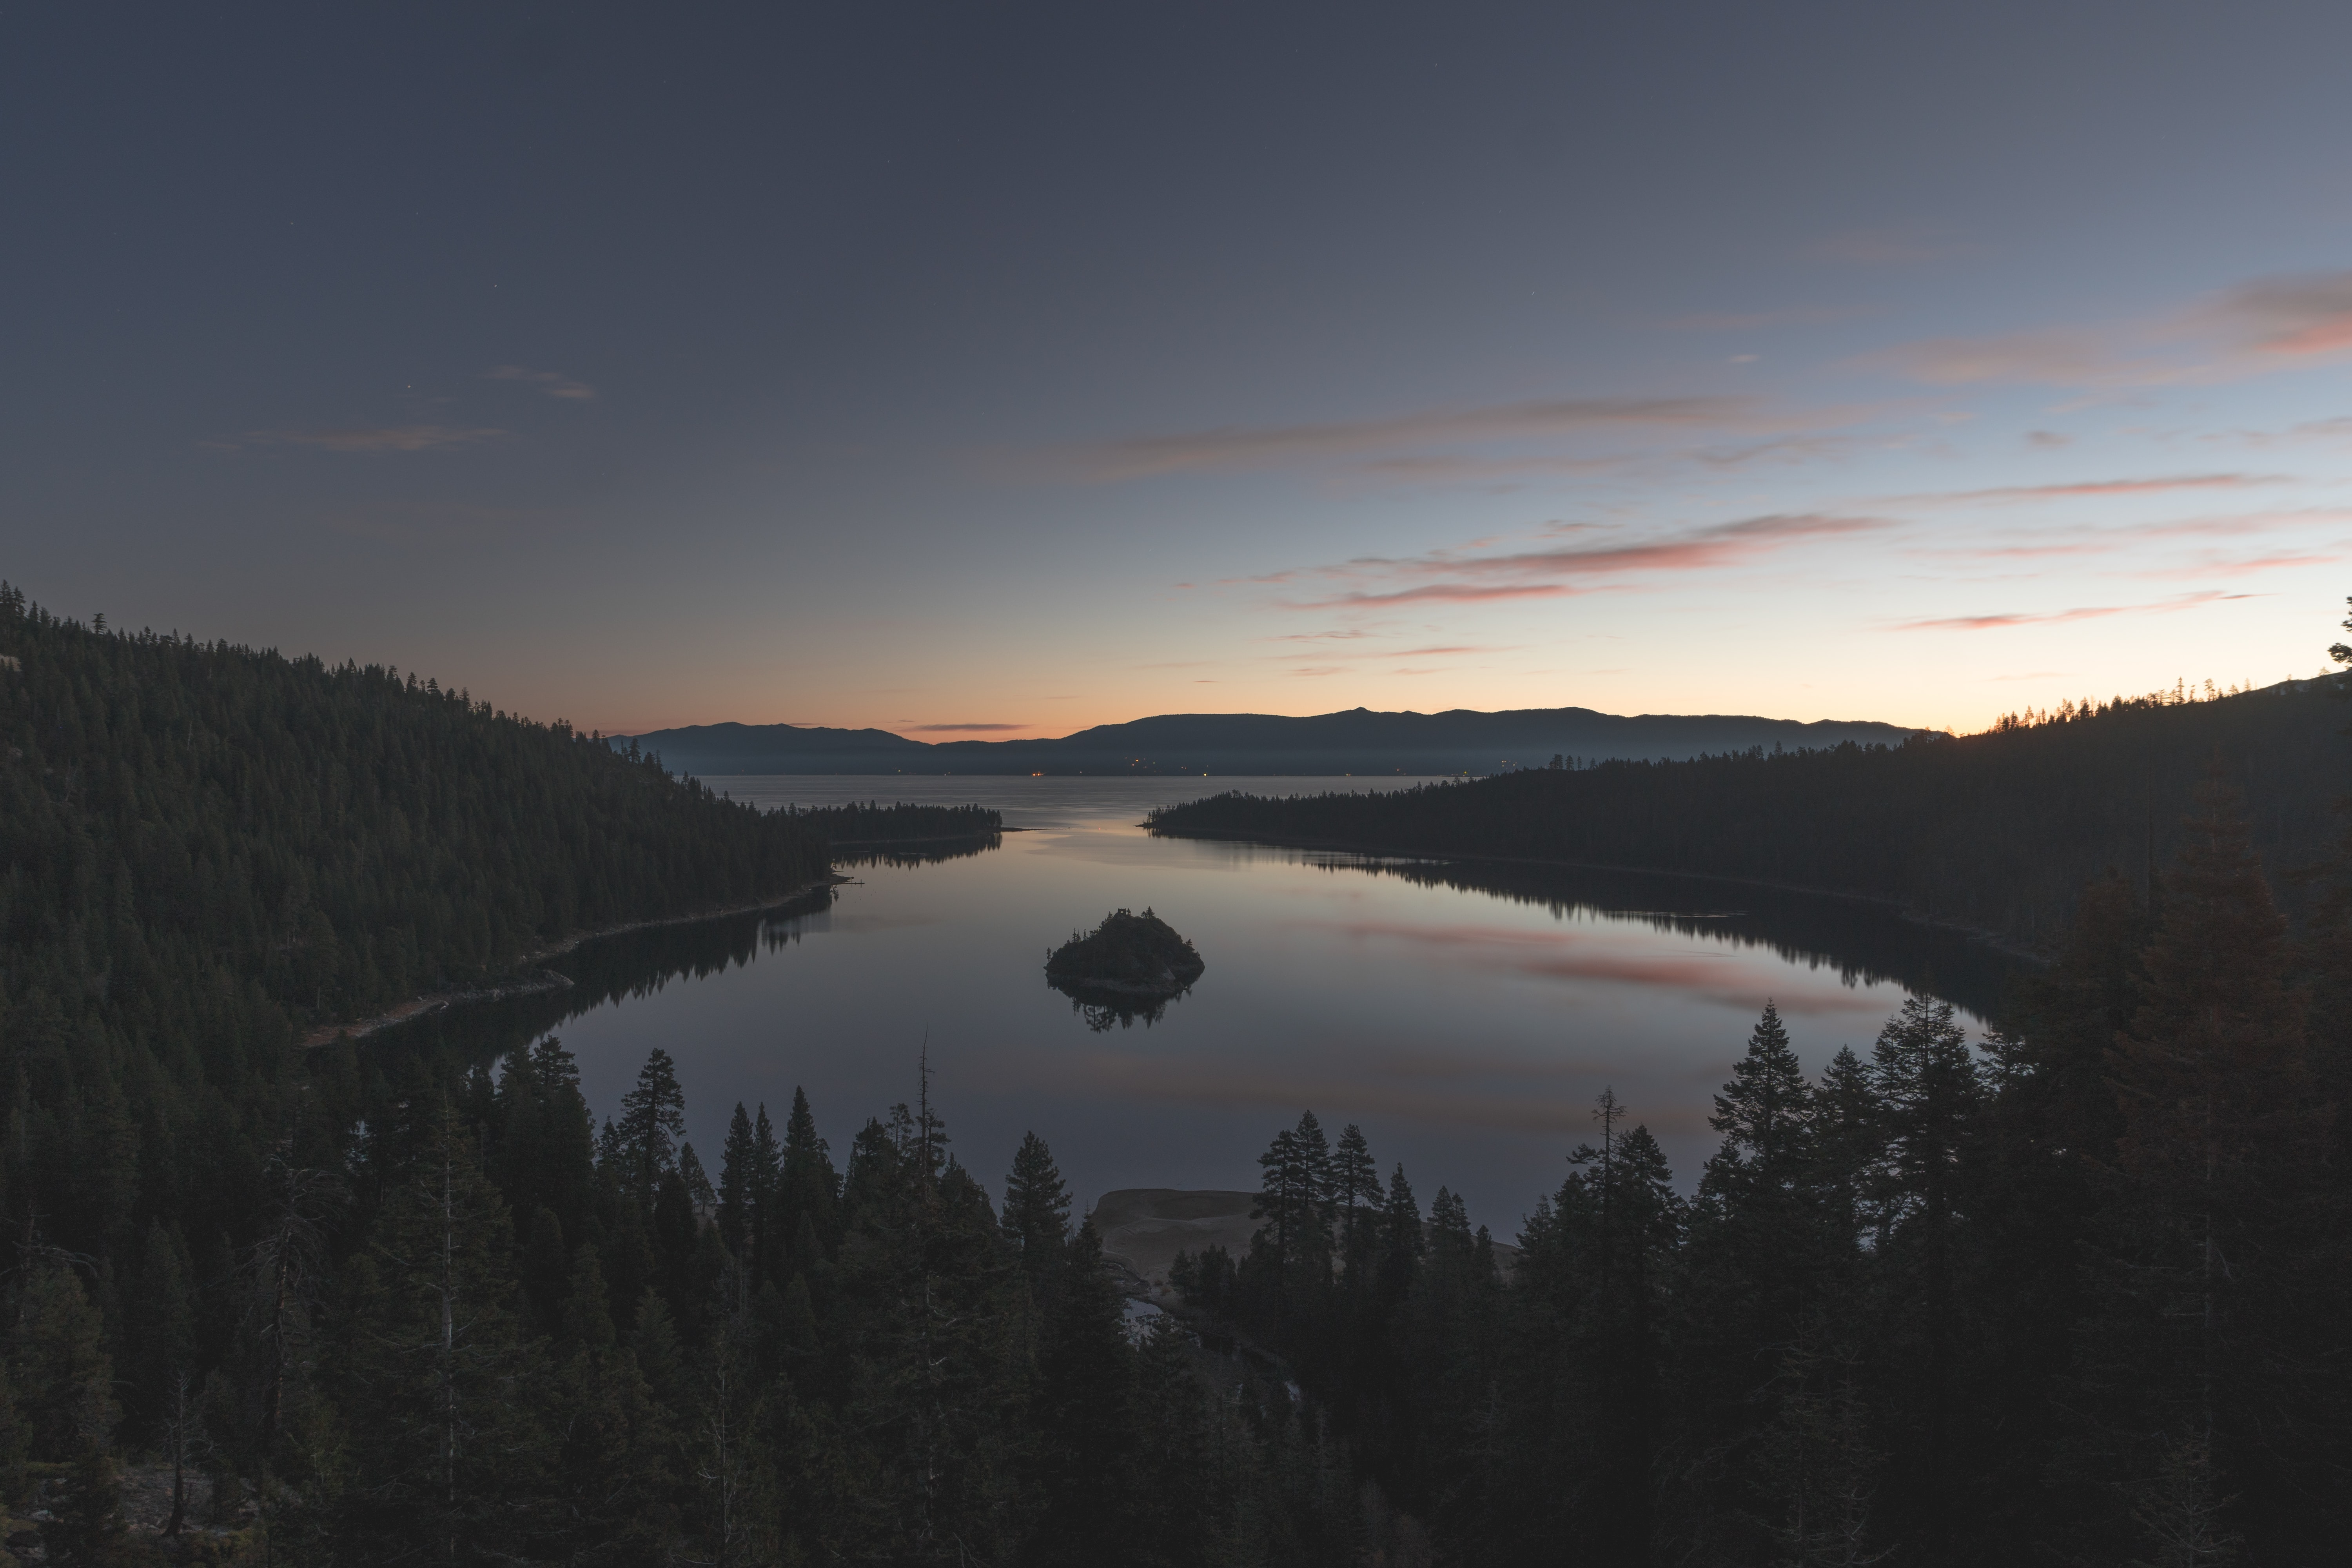 A calm lake situated in the forest of Emerald Bay, Lake Tahoe, reflecting the sunset on its waters